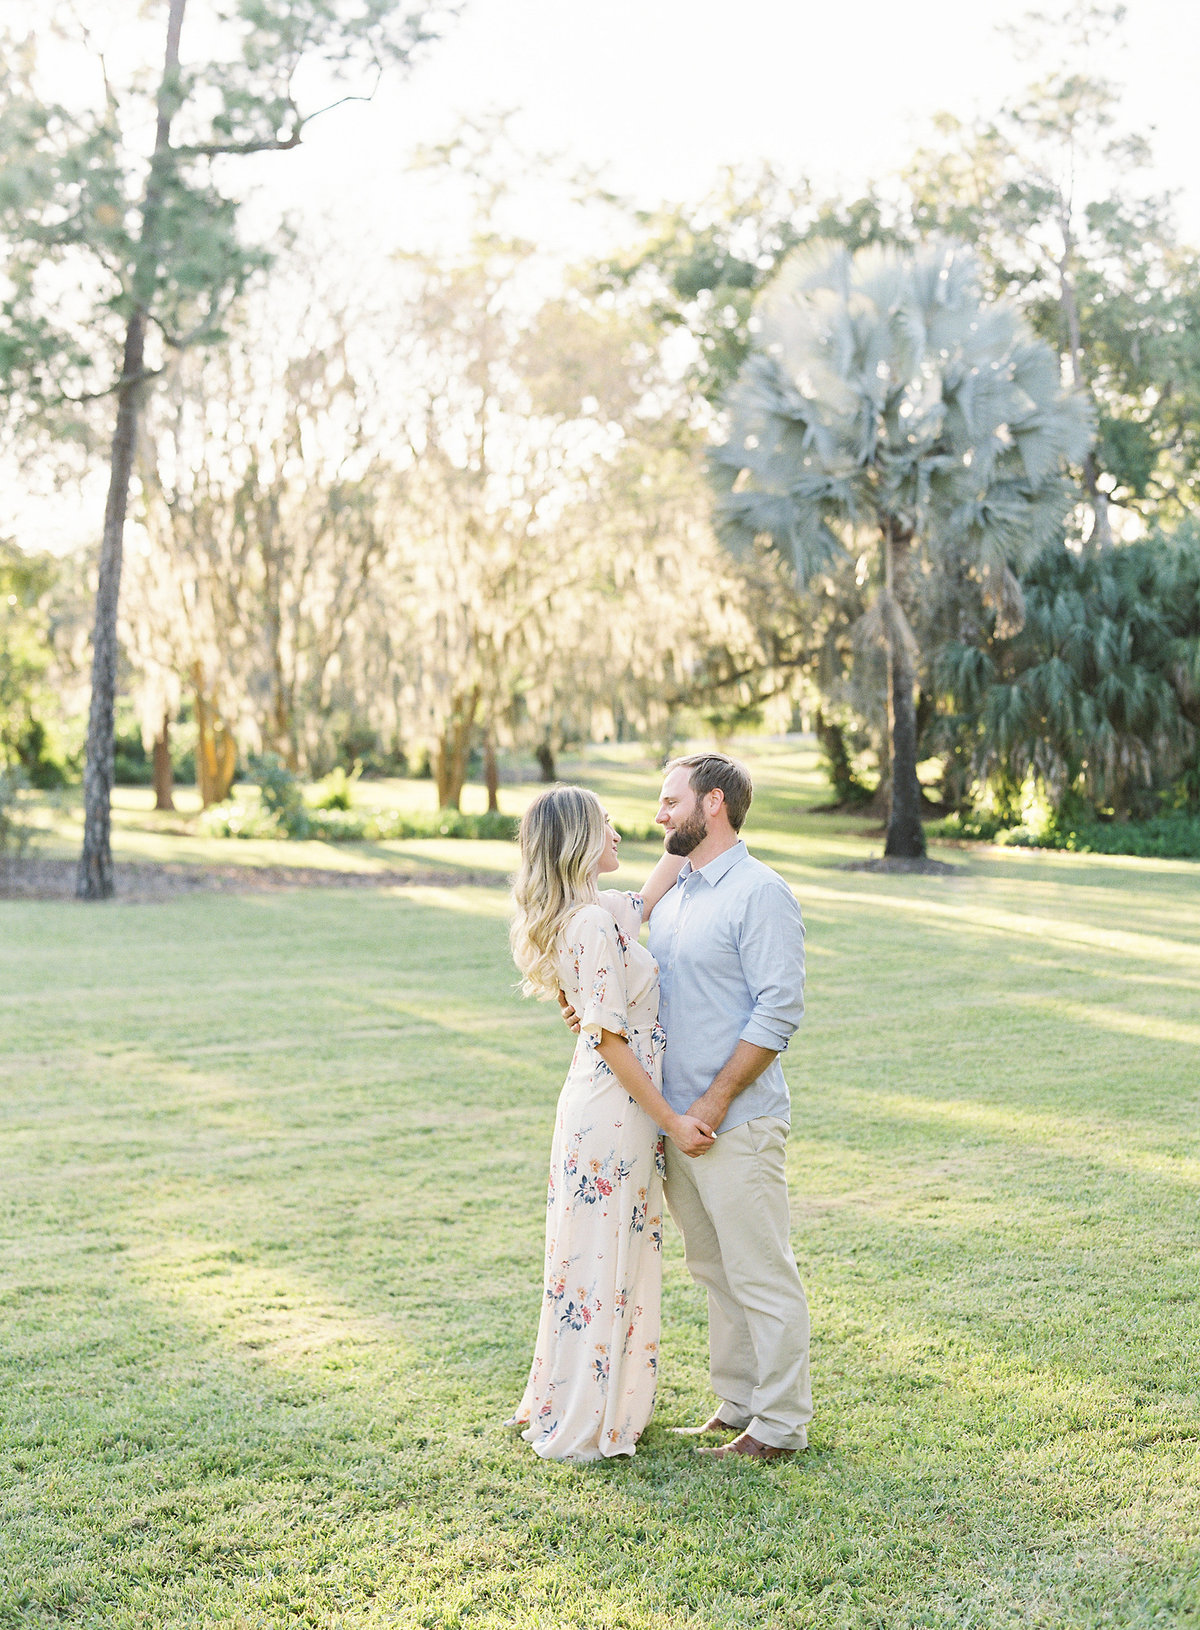 Bok_Tower_Garden_Film_Fine_Art_Engagement_Session-34